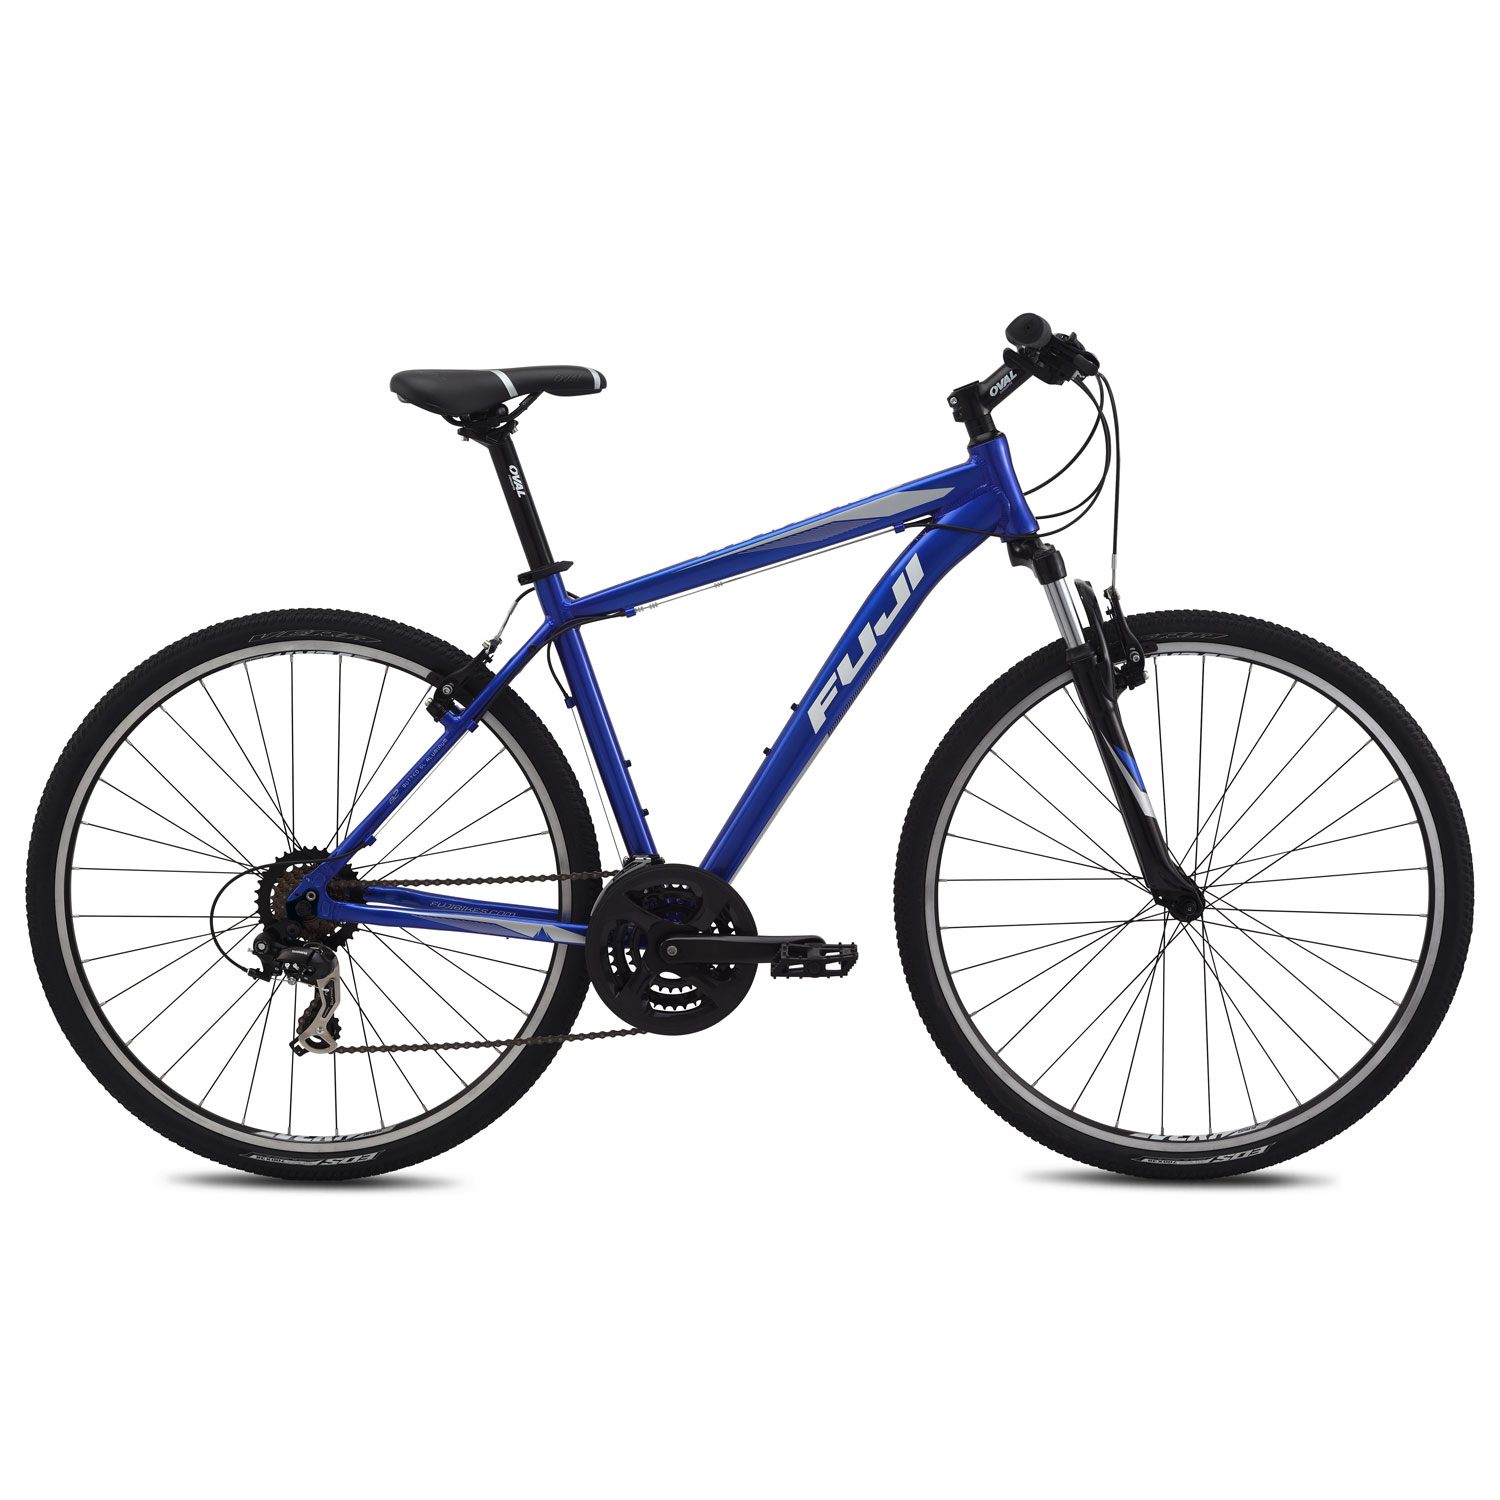 bicycles zoom copy comfort product etc comforter loading cannondale adventure htm